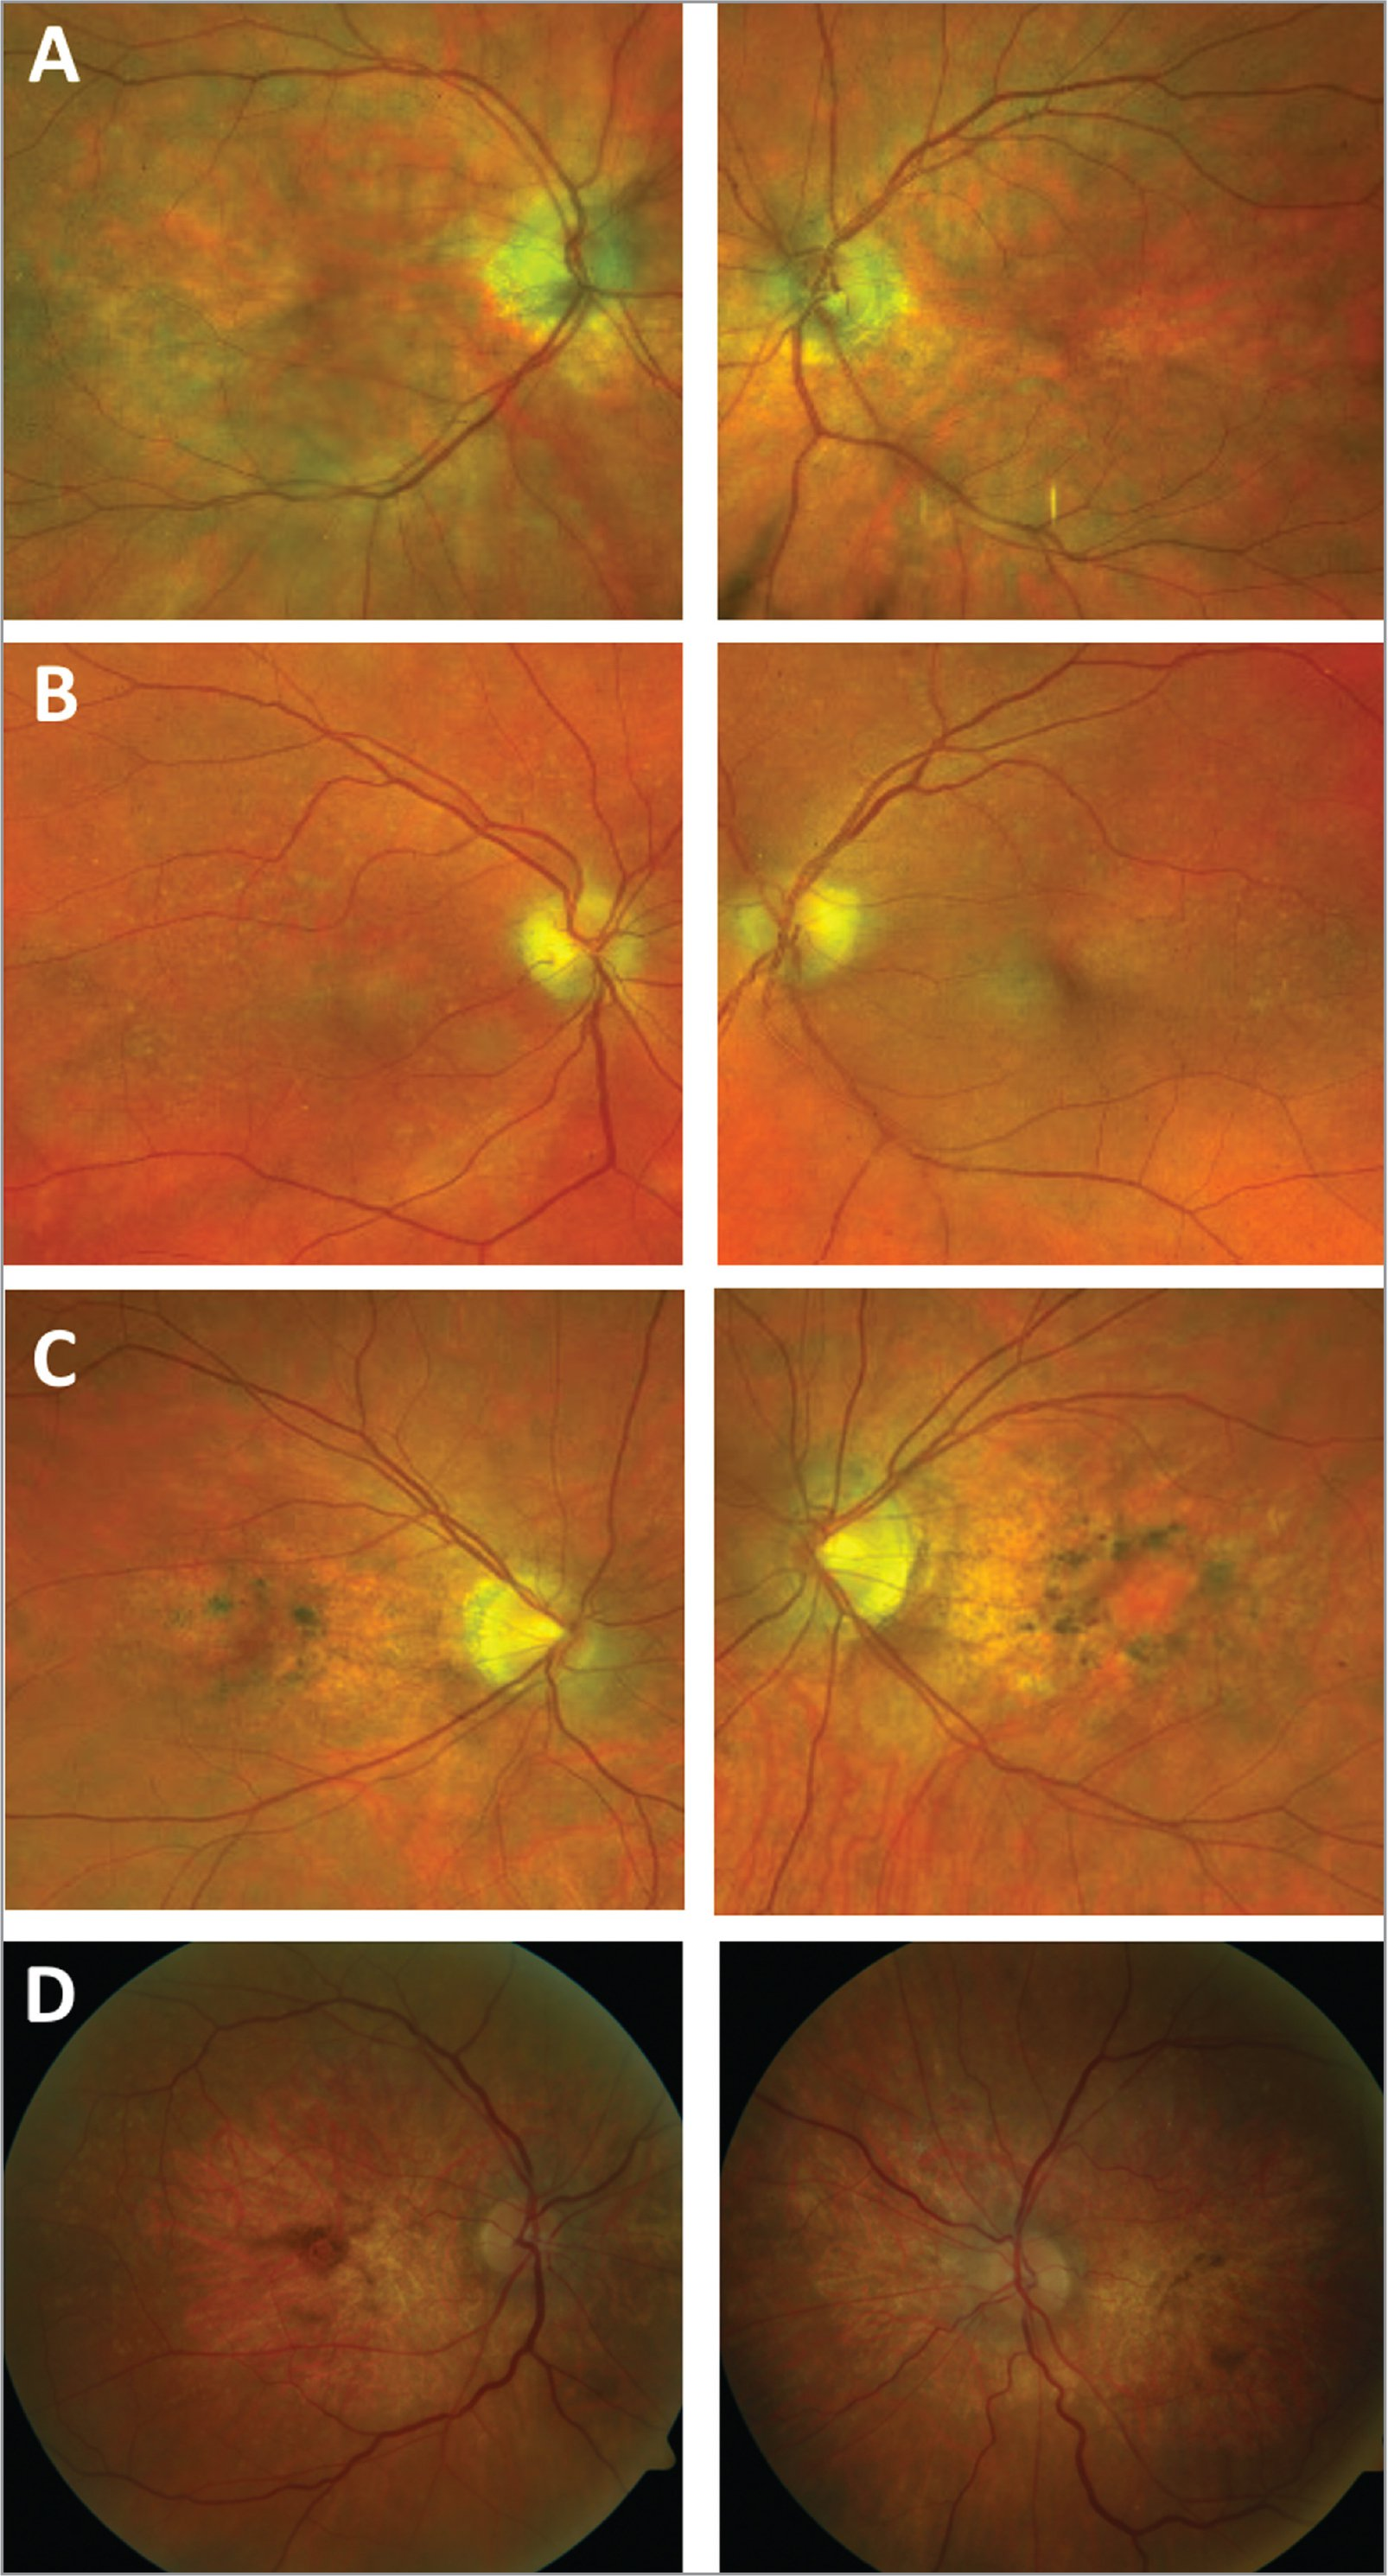 Color fundus photos of Patients 1 through 4 in panels A to D respectively. All demonstrate retinal pigment epithelium changes centered on the macula that appear more subtle than the corresponding autofluorescence findings. Pigment clumping is especially notable in Patients 3 and 4 (C, D) and foveal changes appear consistent with underlying atrophy in Patient 4 (D).